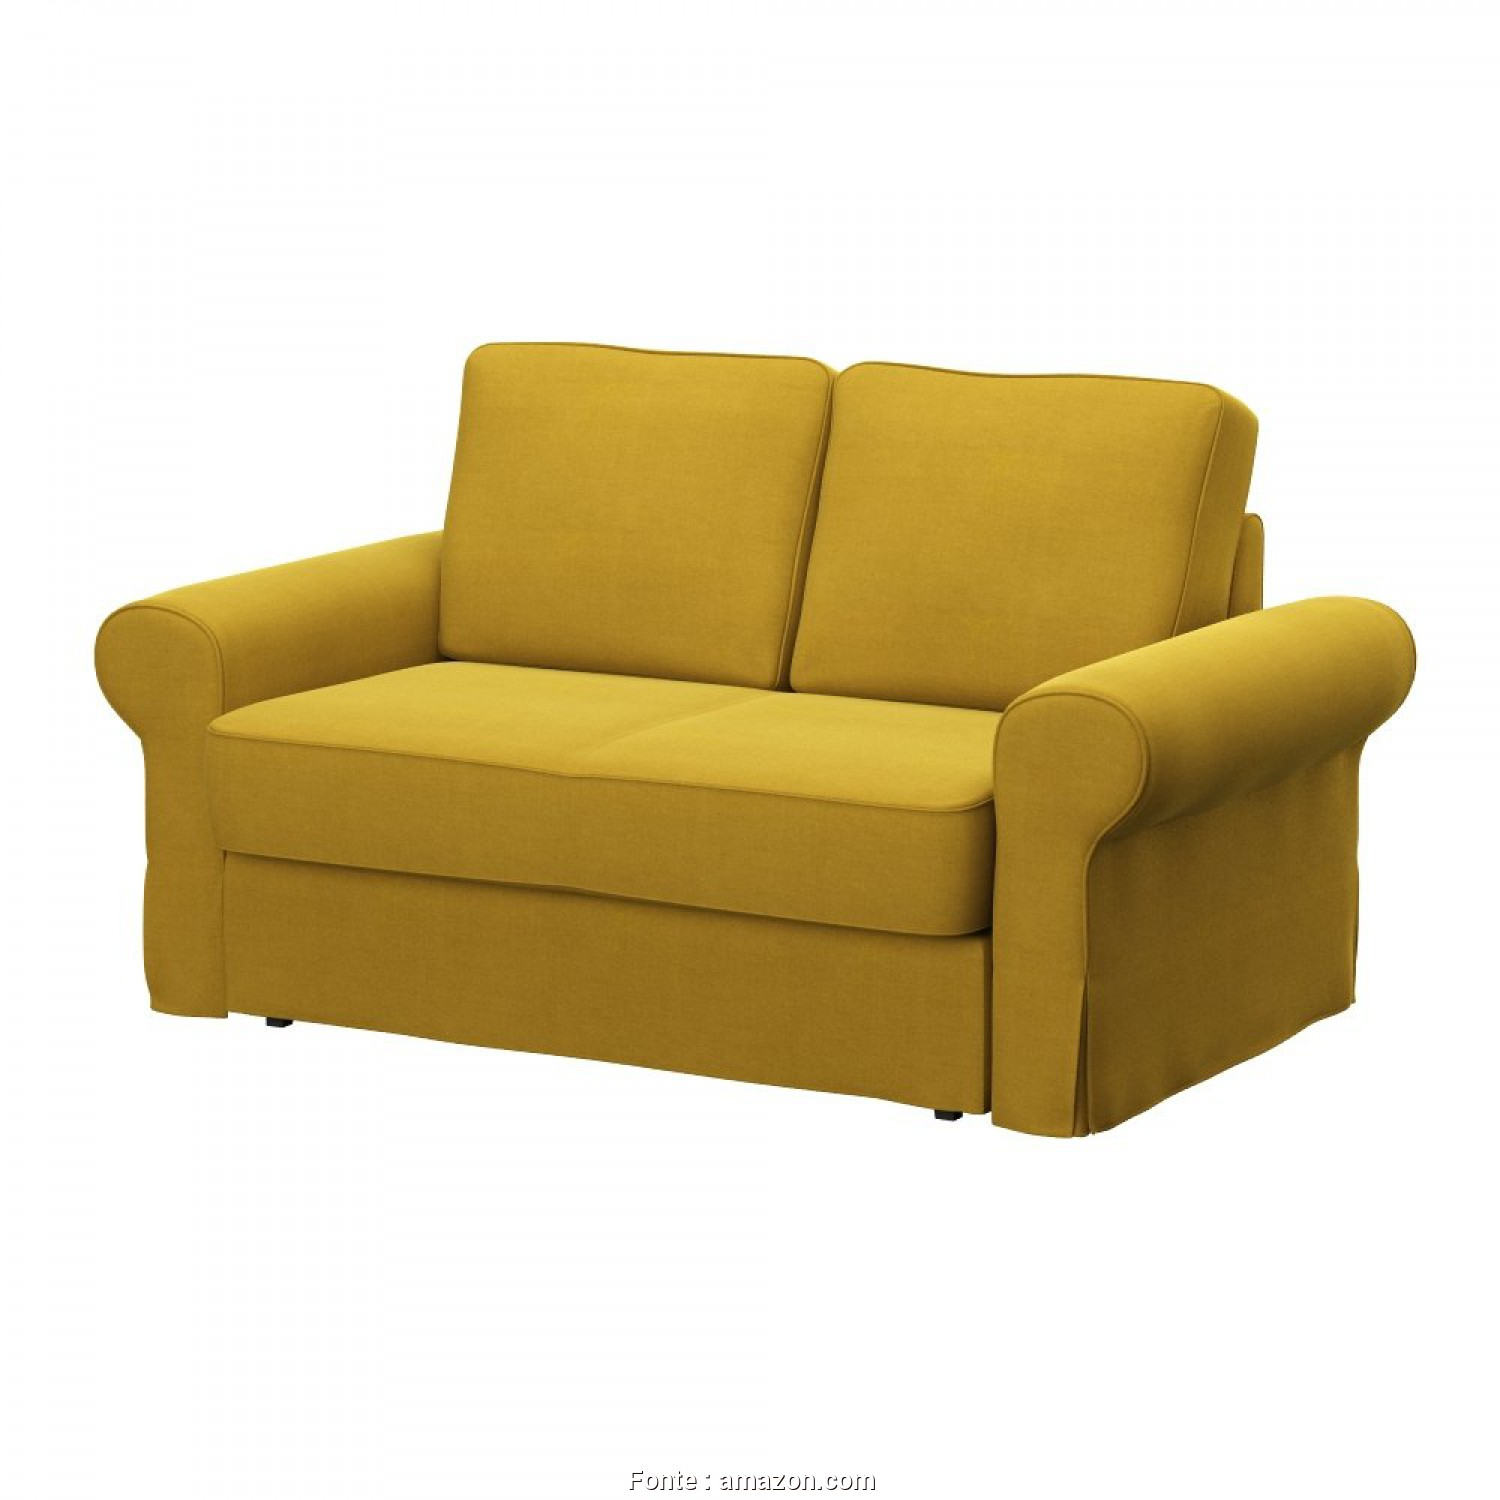 Ikea Backabro Bsogest 3, Superiore Amazon.Com: Soferia, Replacement Cover, IKEA BACKABRO 2-Seat Sofa-Bed, Elegance Dark Yellow: Home & Kitchen